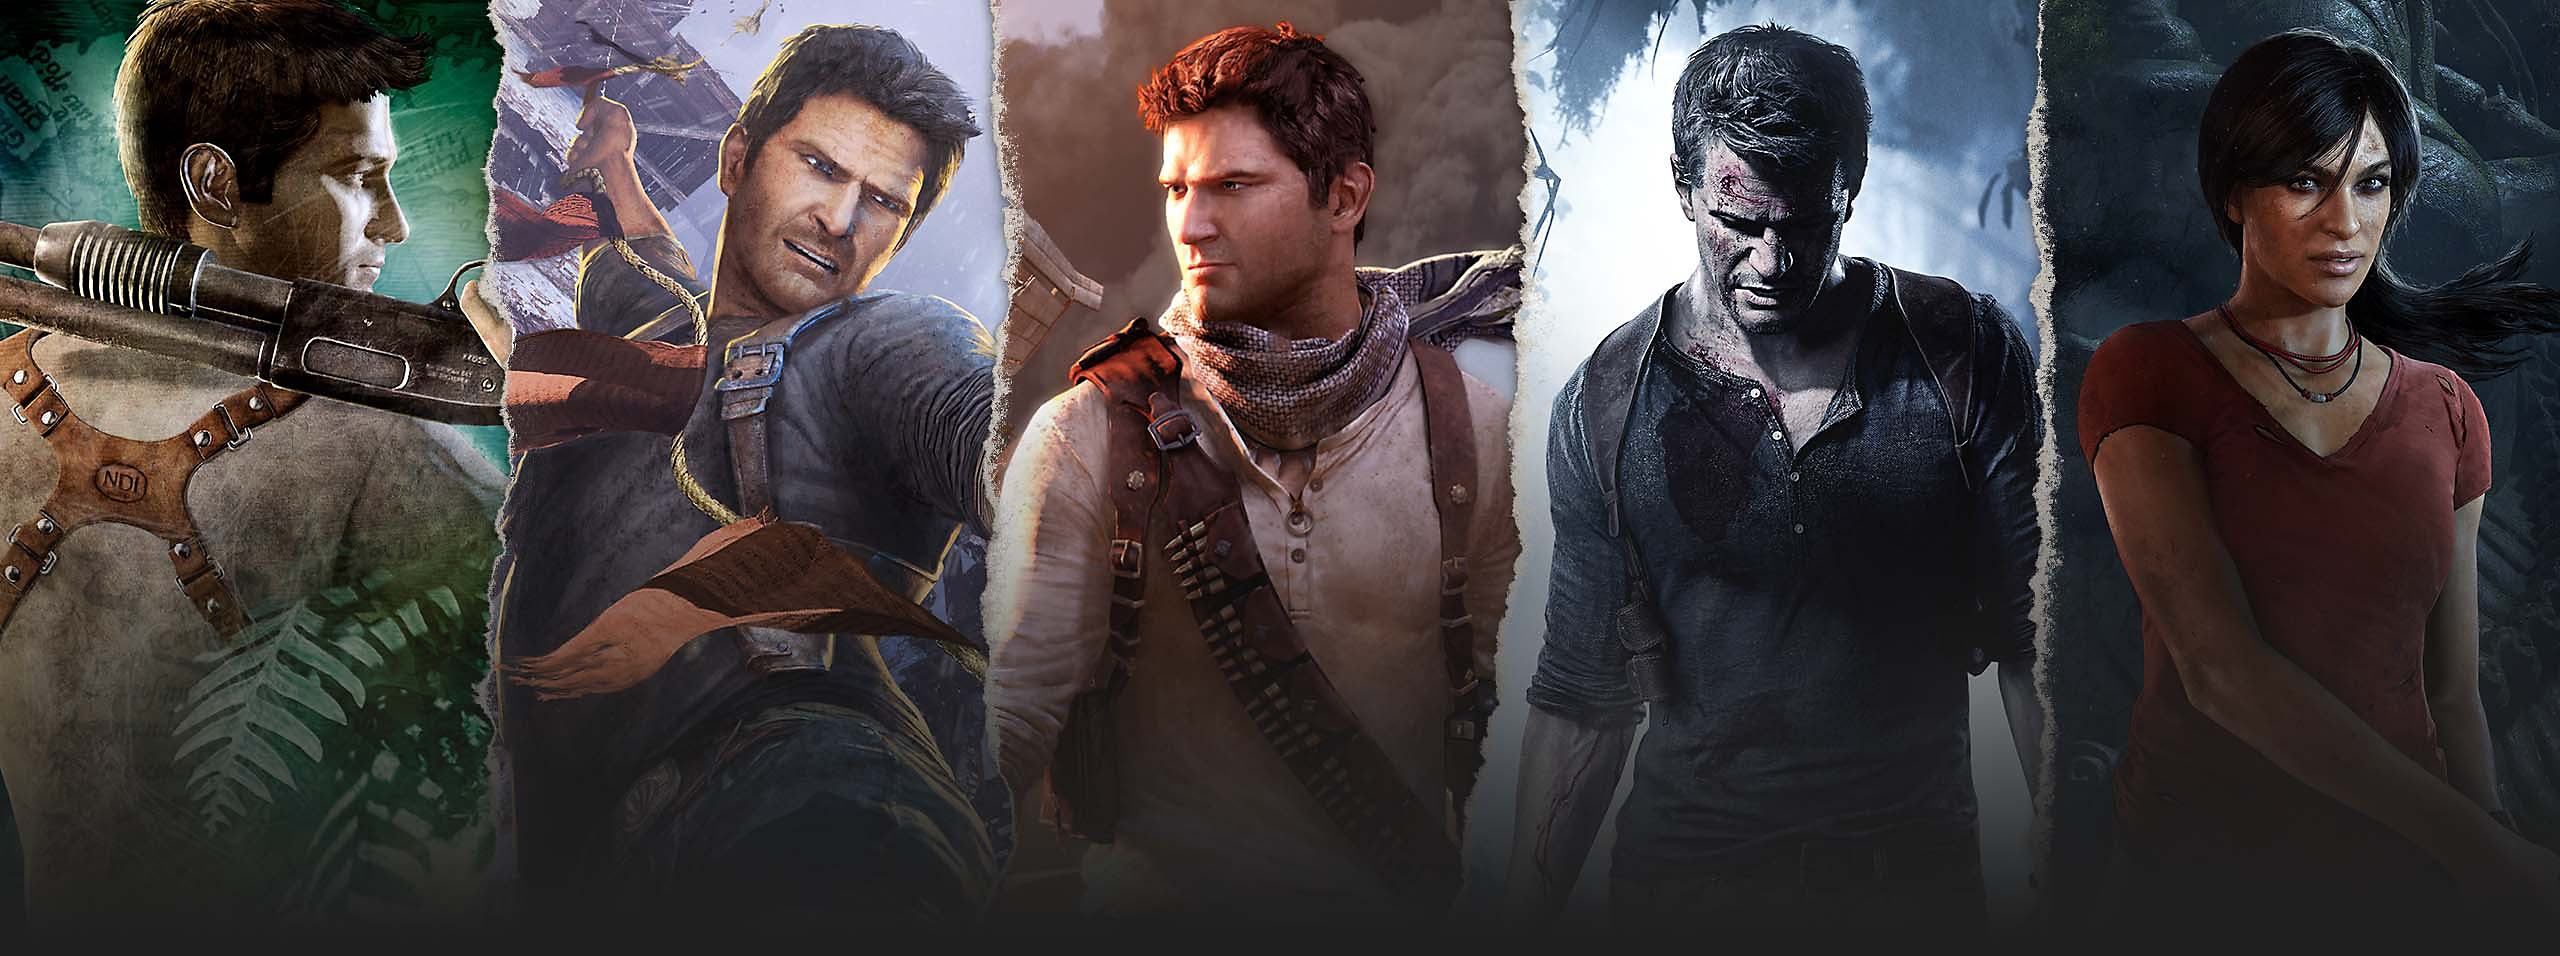 uncharted franchise